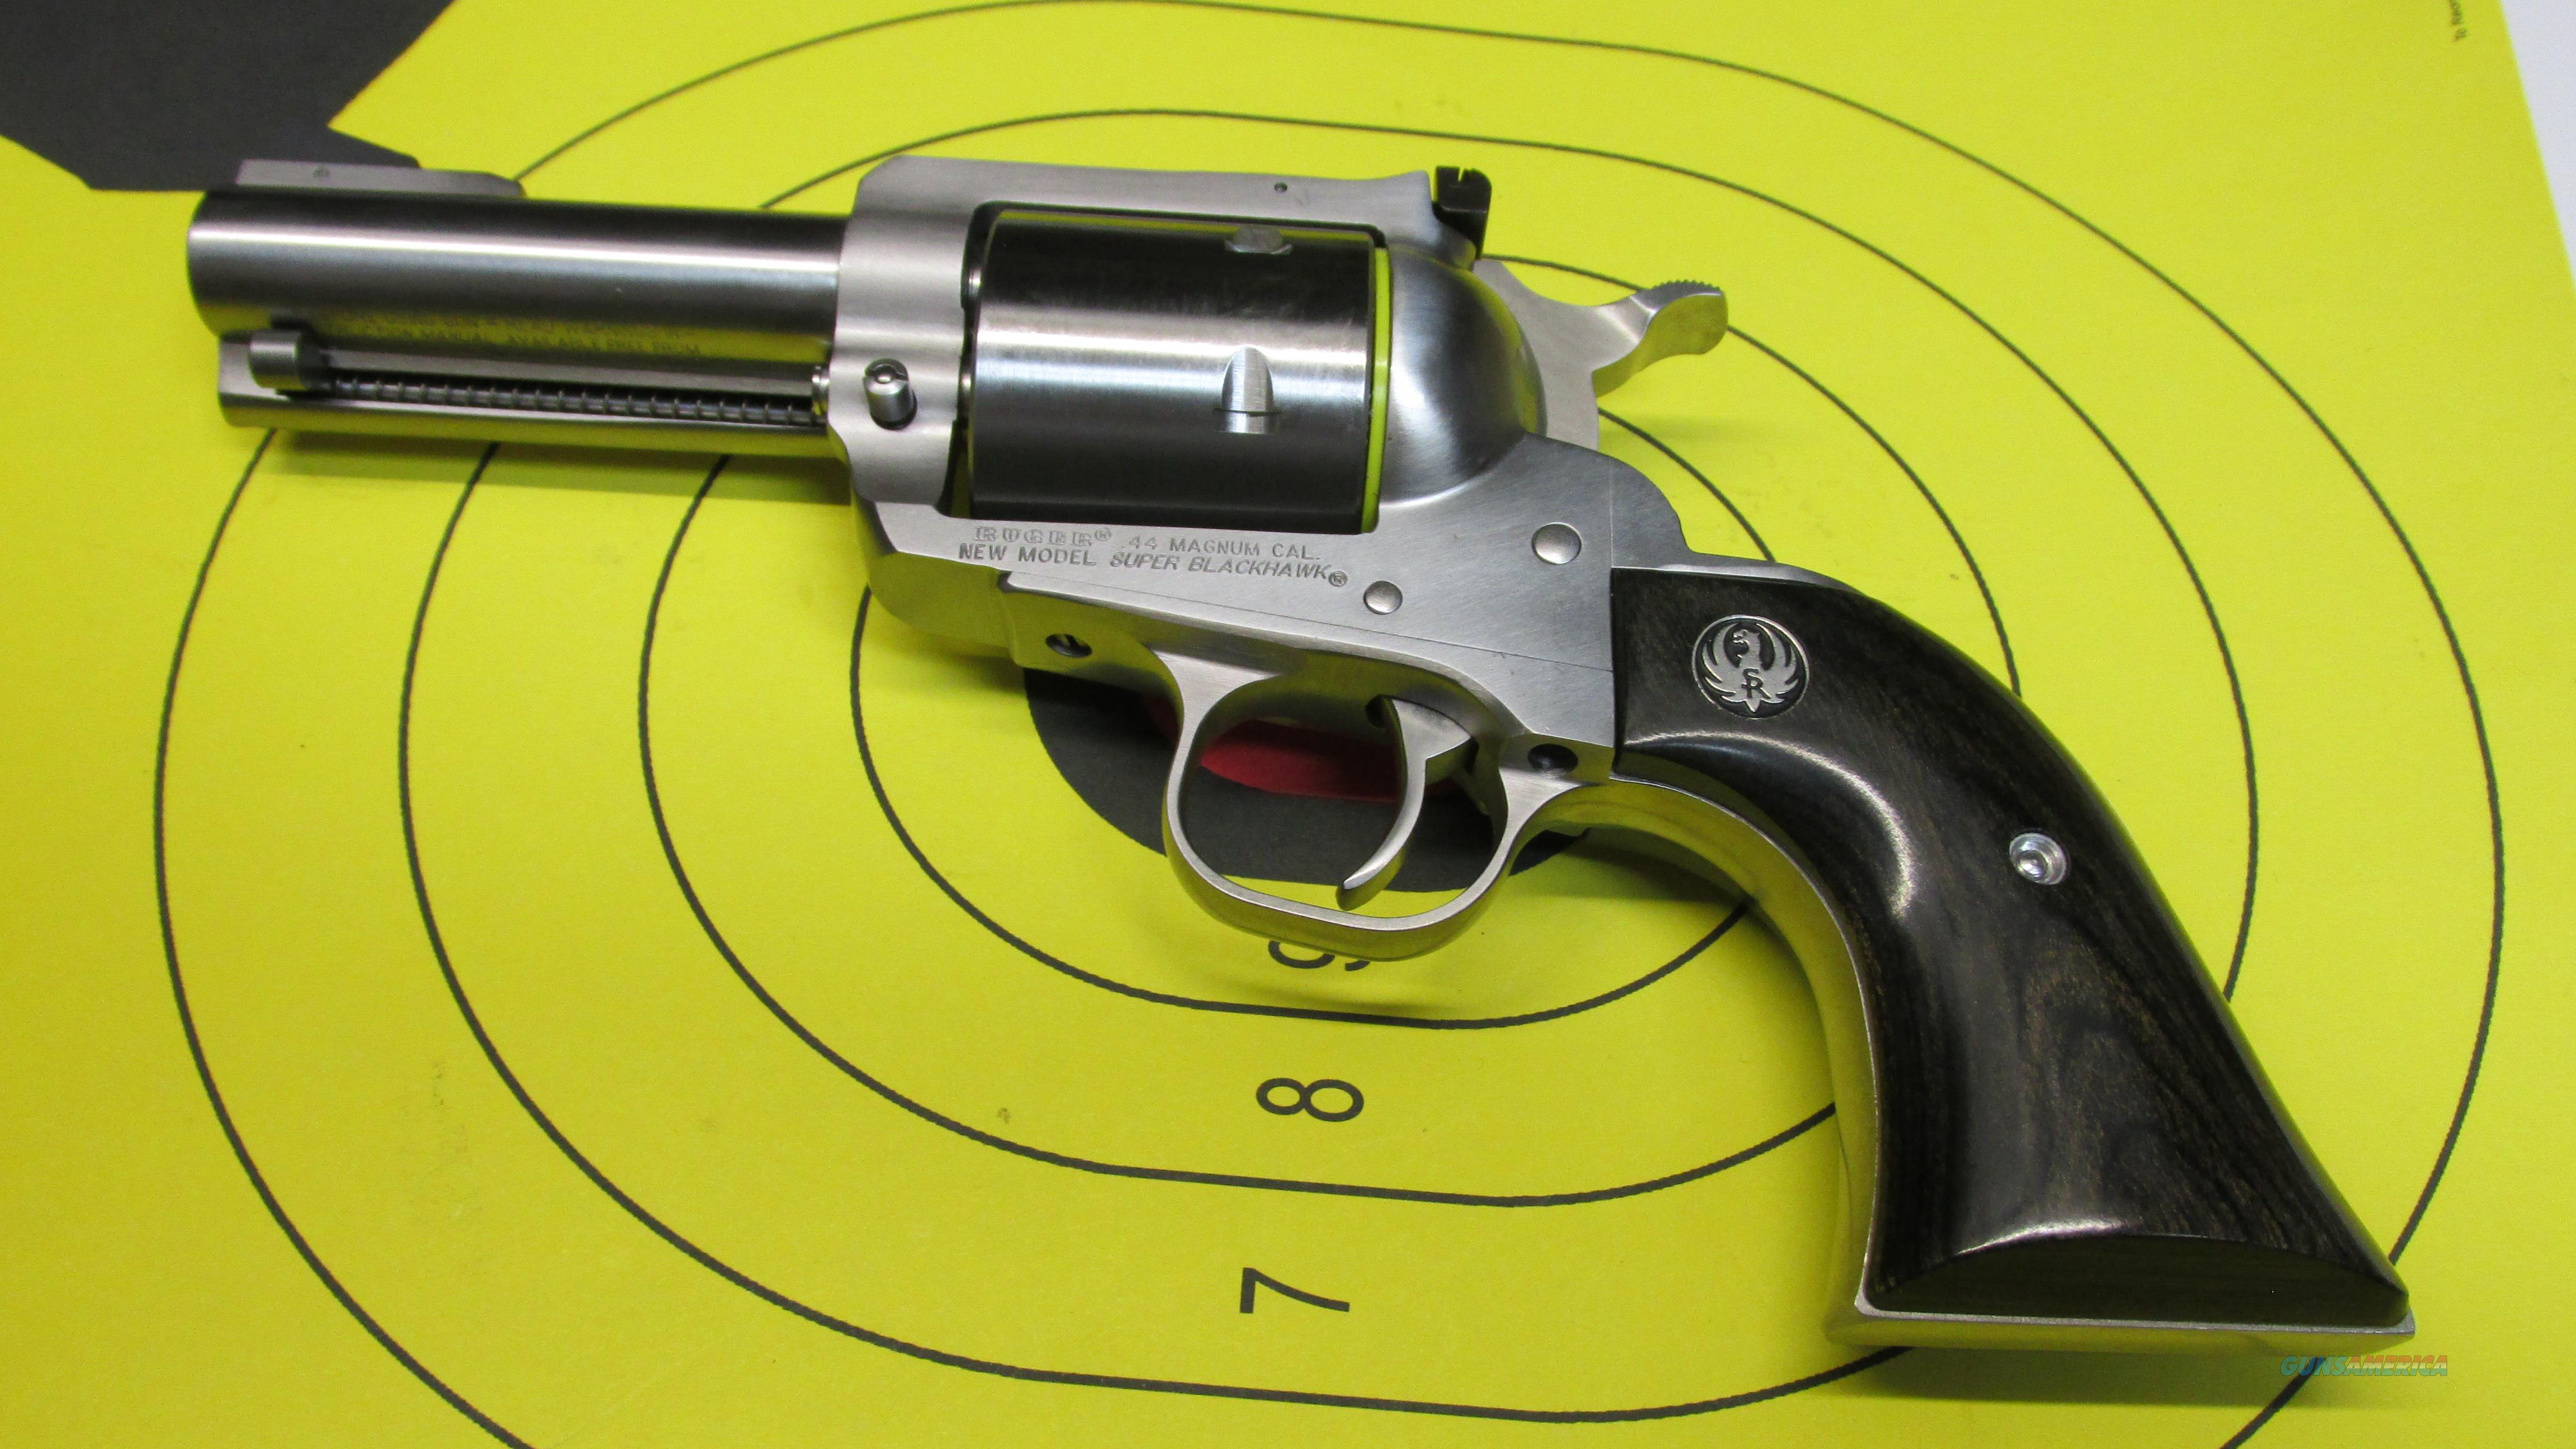 "RUGER SUPER BLACKHAWK 6 SHOT .44 MAGNUM SUNGLE ACTION REVOLVER, 3.5"" BARREL  Guns > Pistols > Ruger Single Action Revolvers > Blackhawk Type"